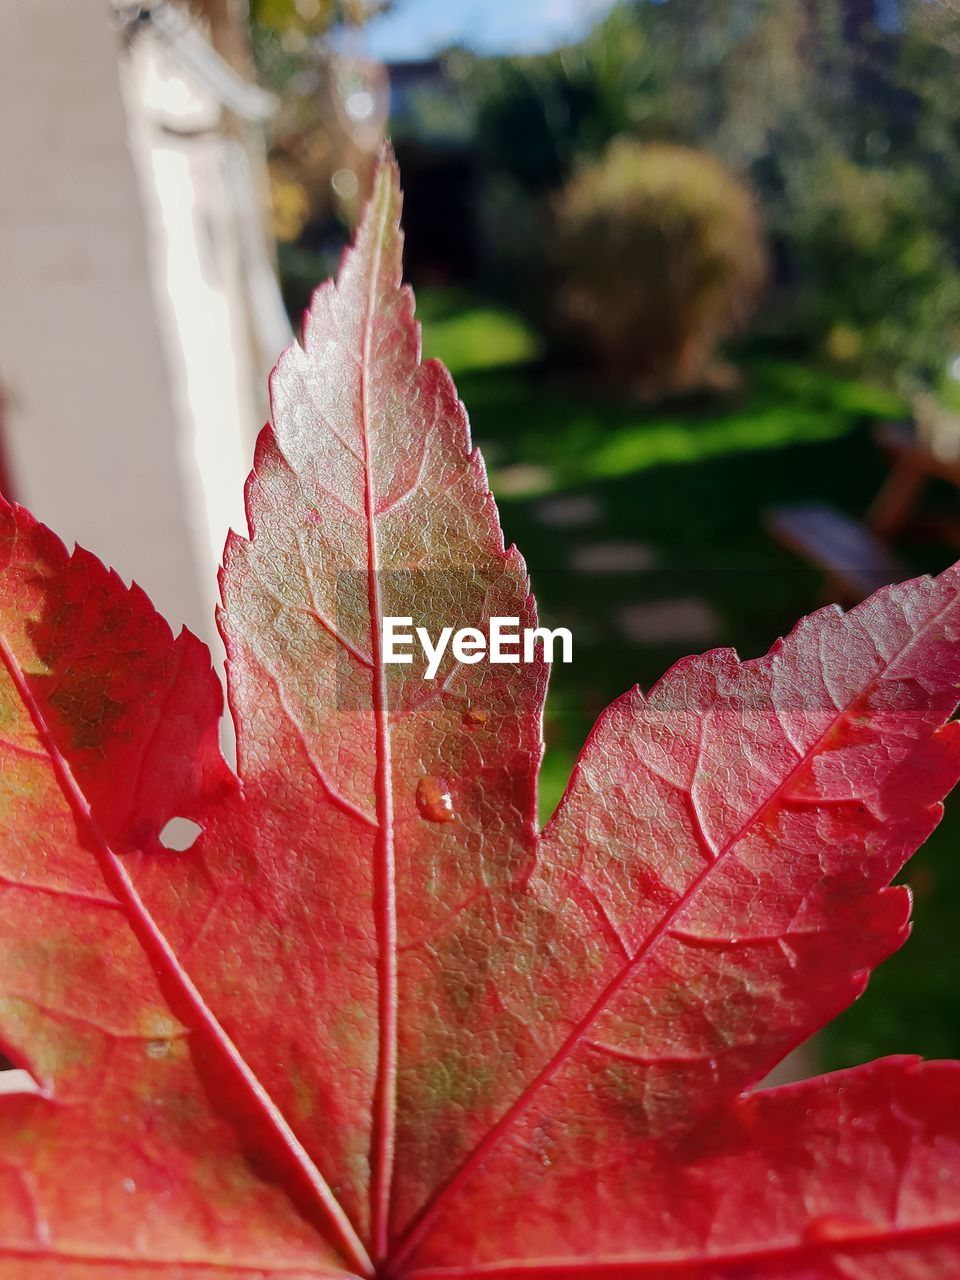 leaf, plant part, close-up, plant, autumn, change, selective focus, day, beauty in nature, no people, nature, red, growth, leaf vein, outdoors, focus on foreground, leaves, fragility, maple leaf, vulnerability, natural condition